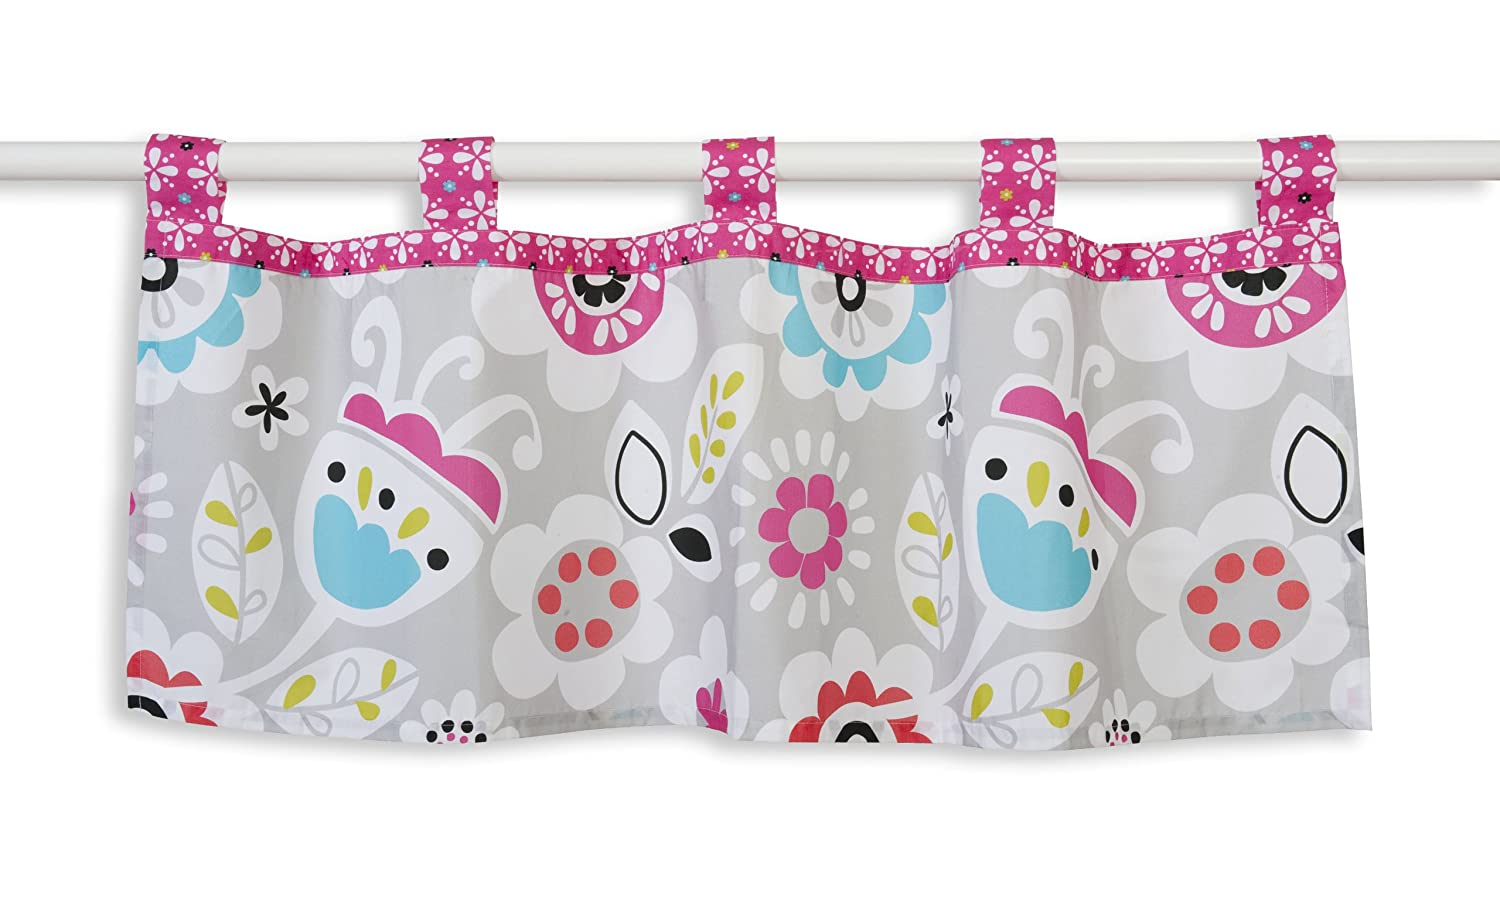 Max 40% OFF Sumersault Window Special sale item Chelsea Valance